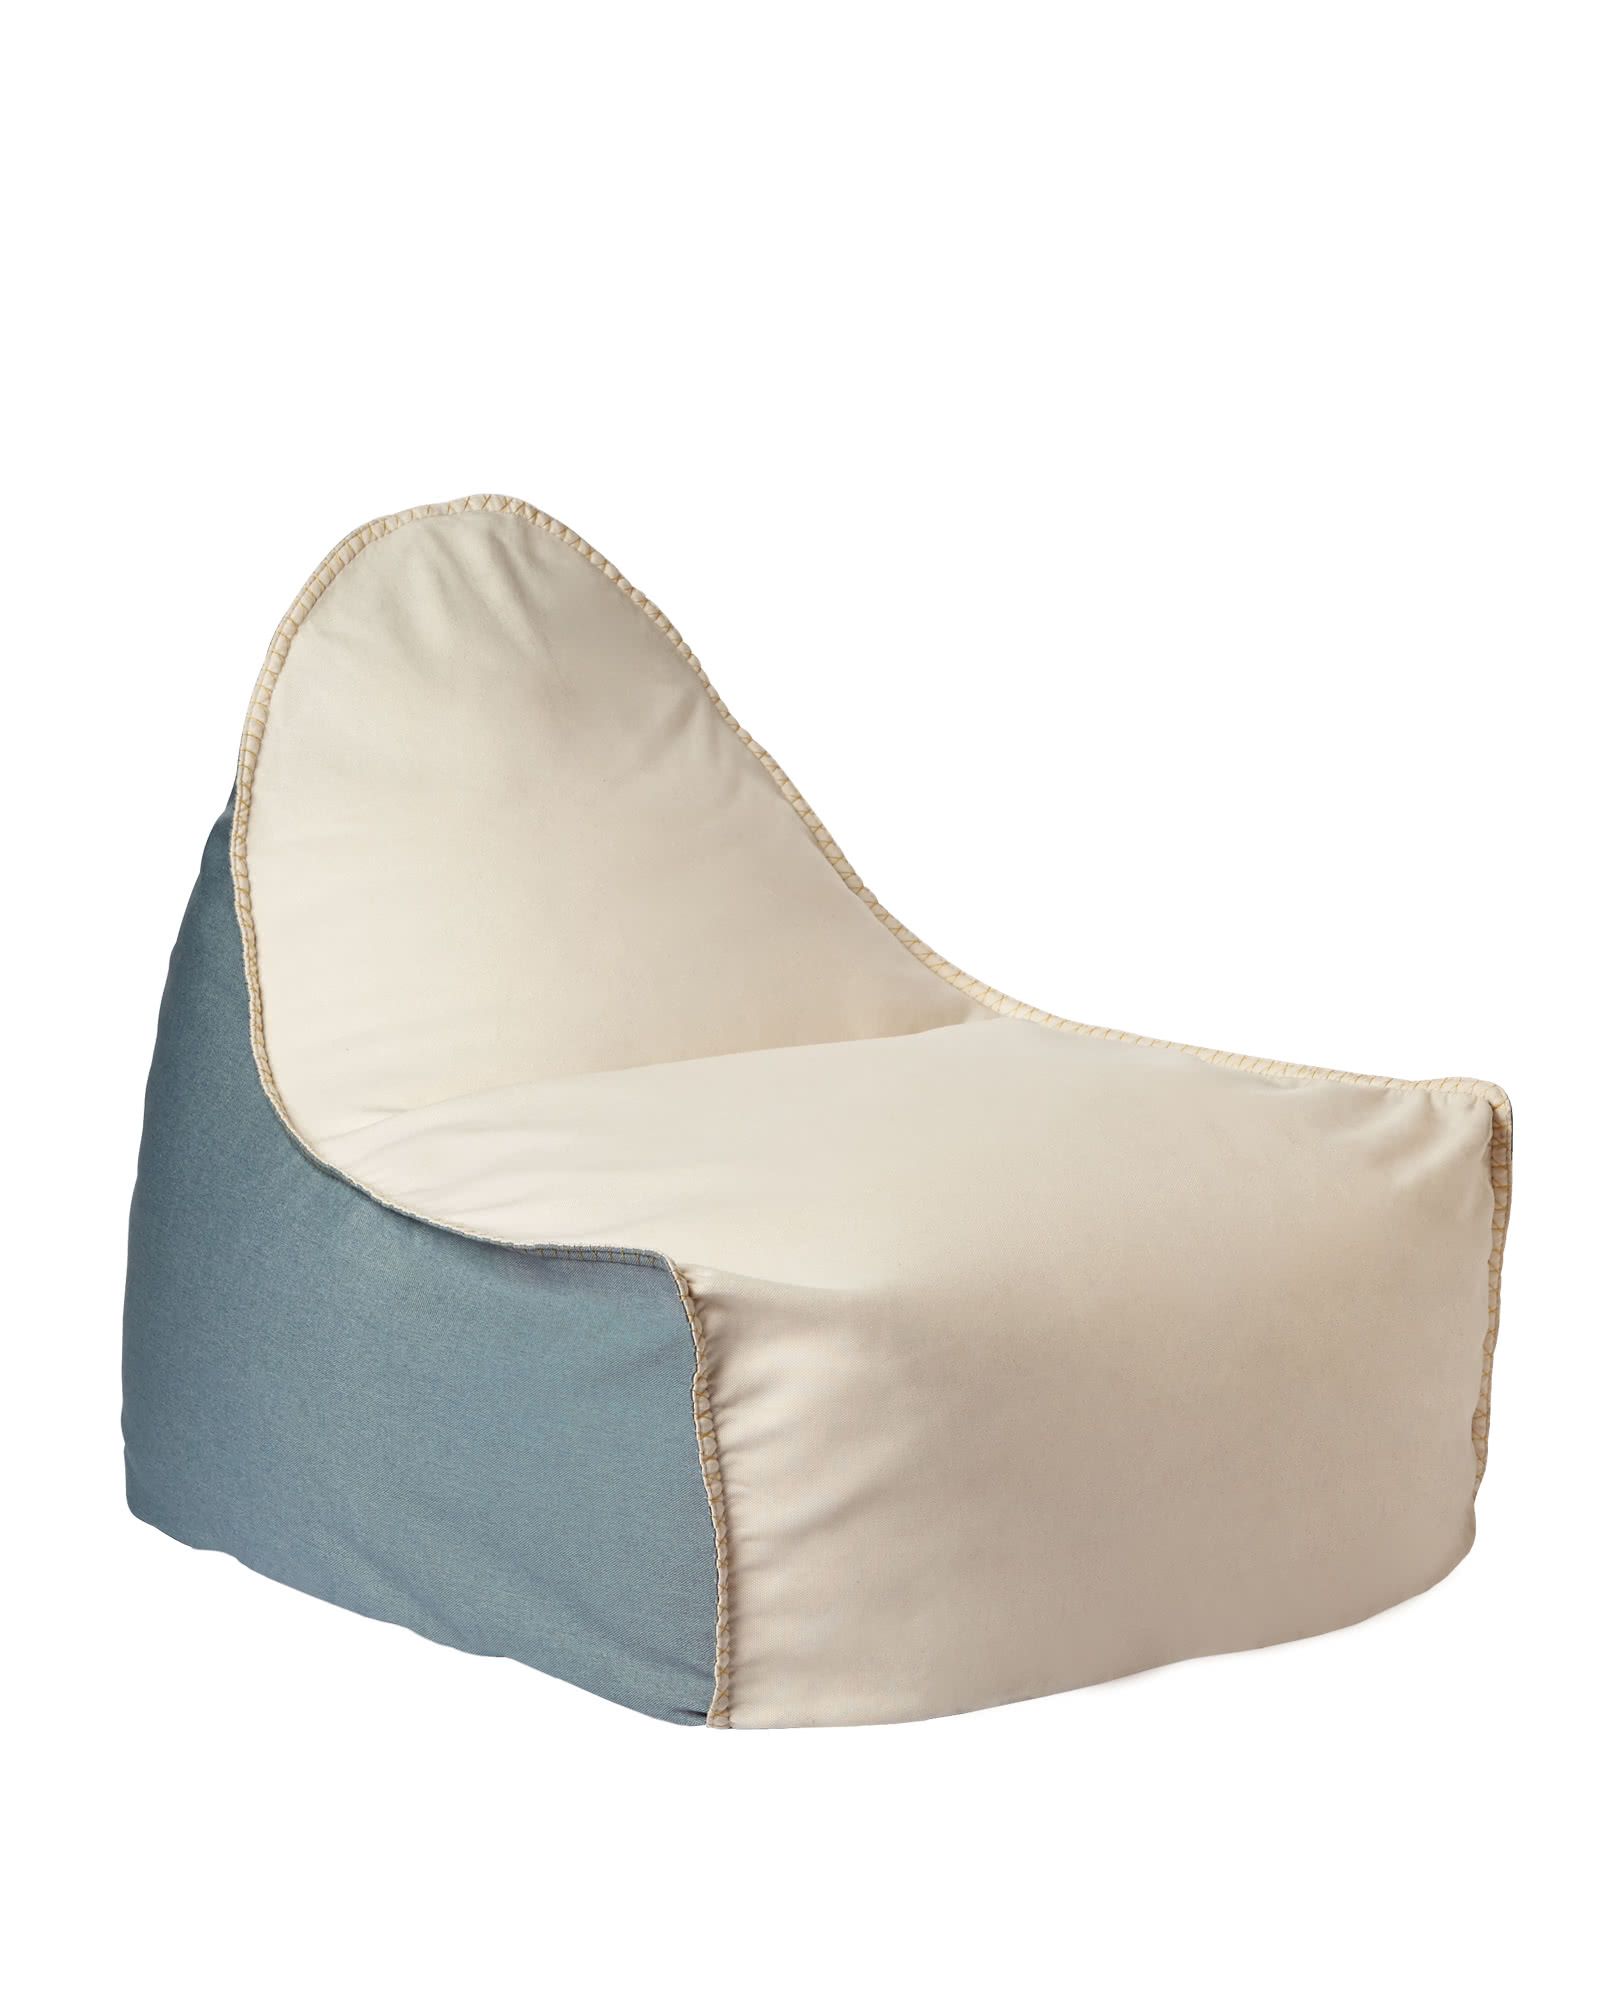 newport lounger. newport lounger  chairs  serena and lily